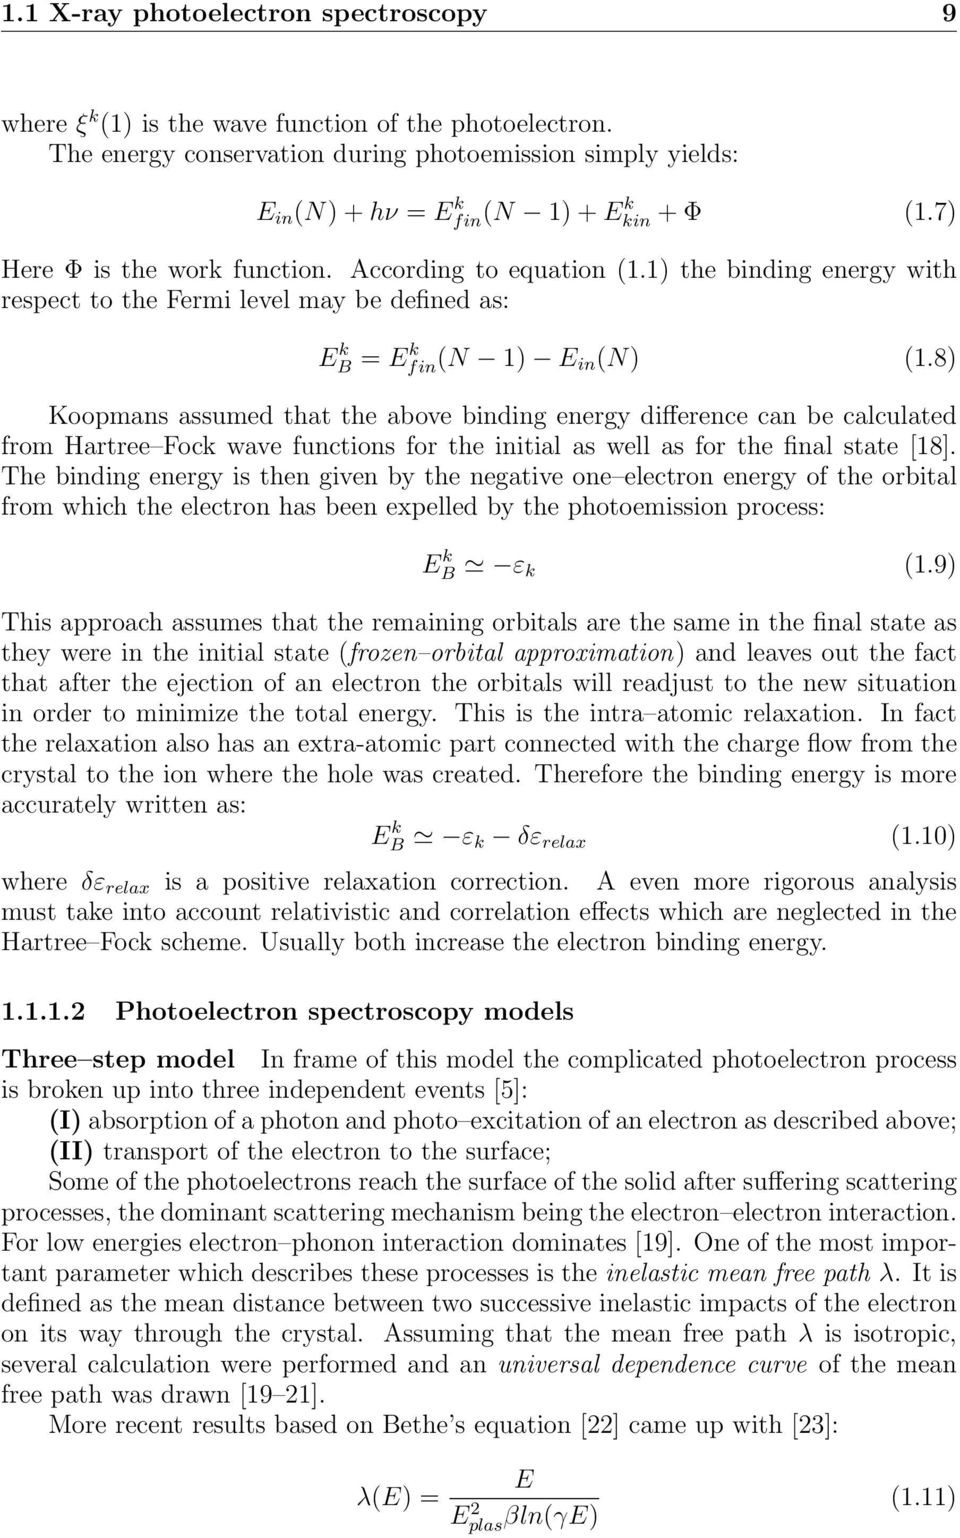 Photoelectron Spectroscopy Worksheet Answers Electronic Structure and Magnetism Of Selected Materials